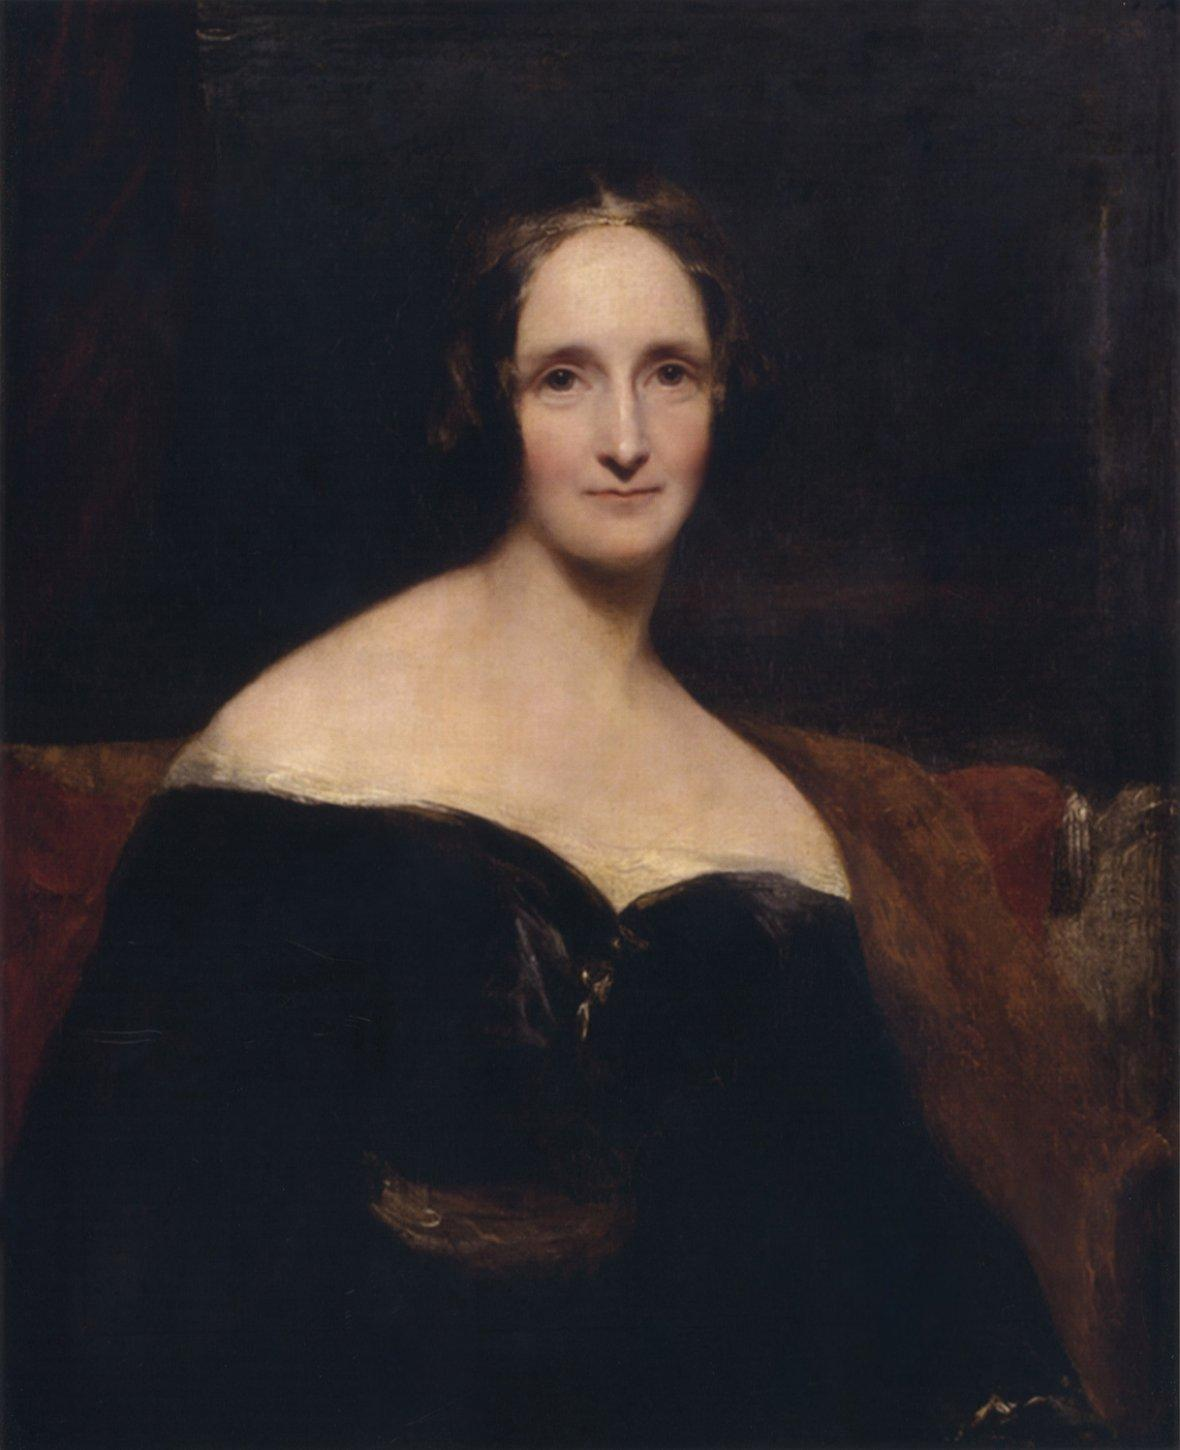 Portrait of Mary Shelley